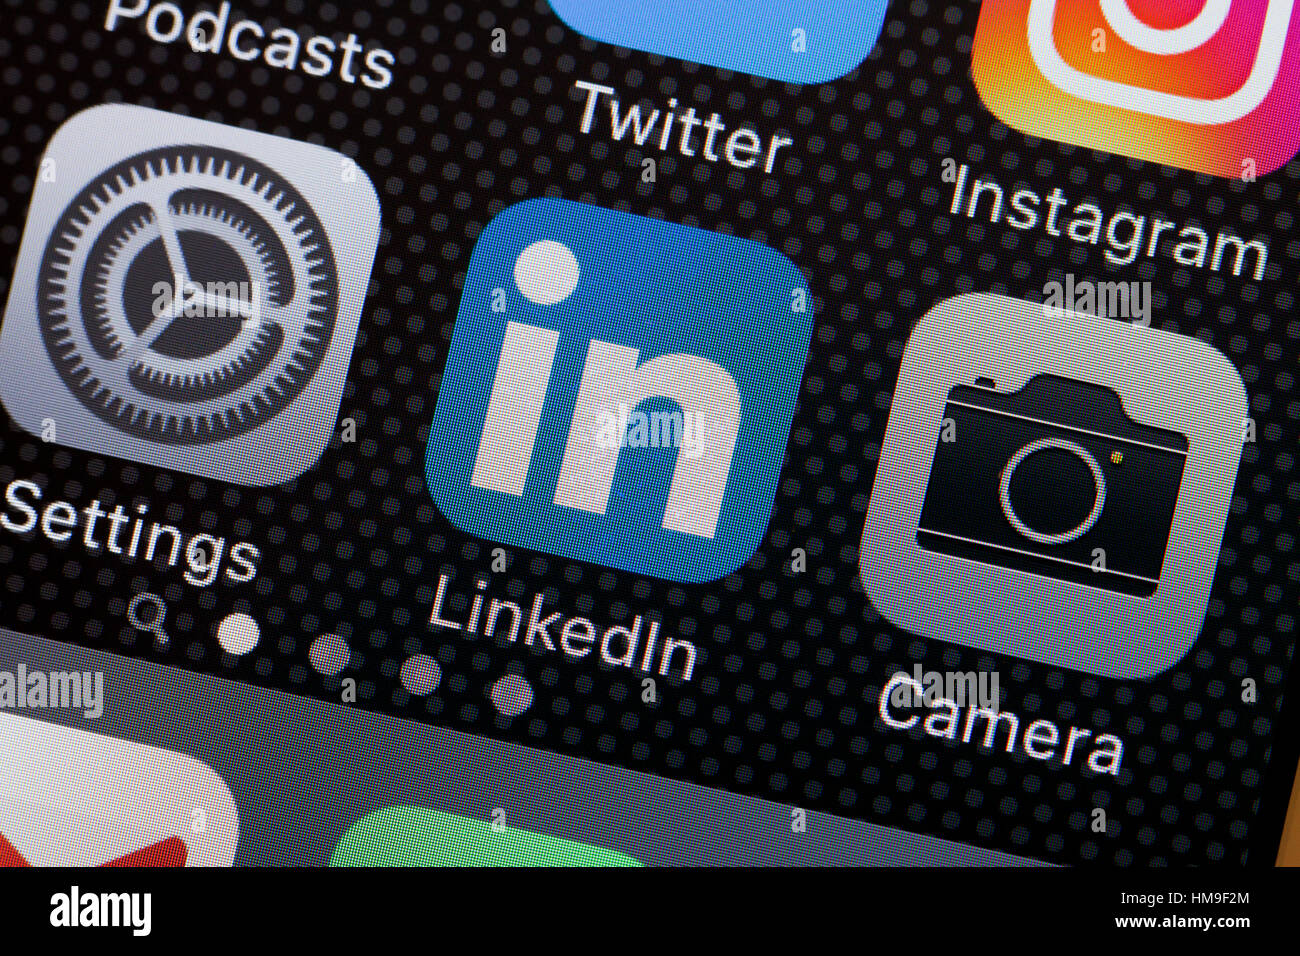 LinkedIn (Linked In) app icon on iPhone screen - USA - Stock Image